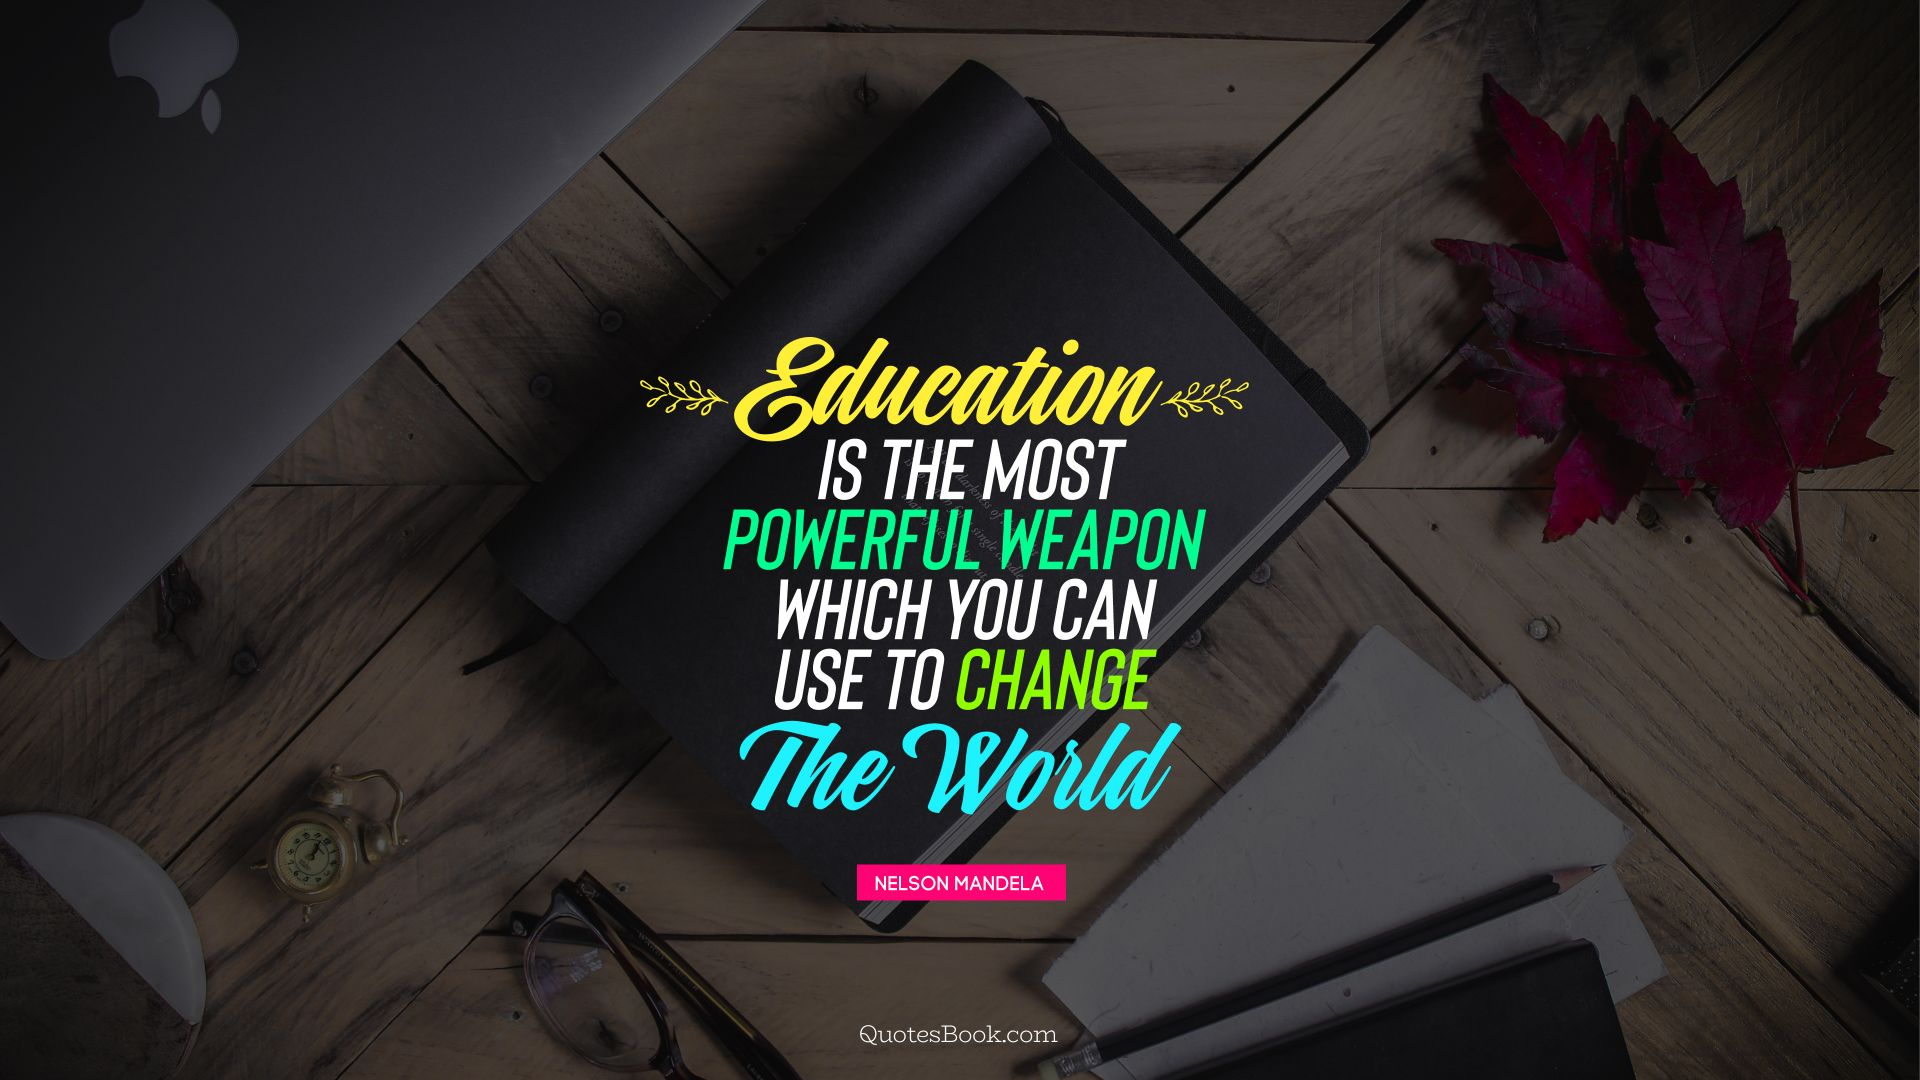 Education is the most powerful weapon which you can use to change the world . - Quote by Nelson Mandela